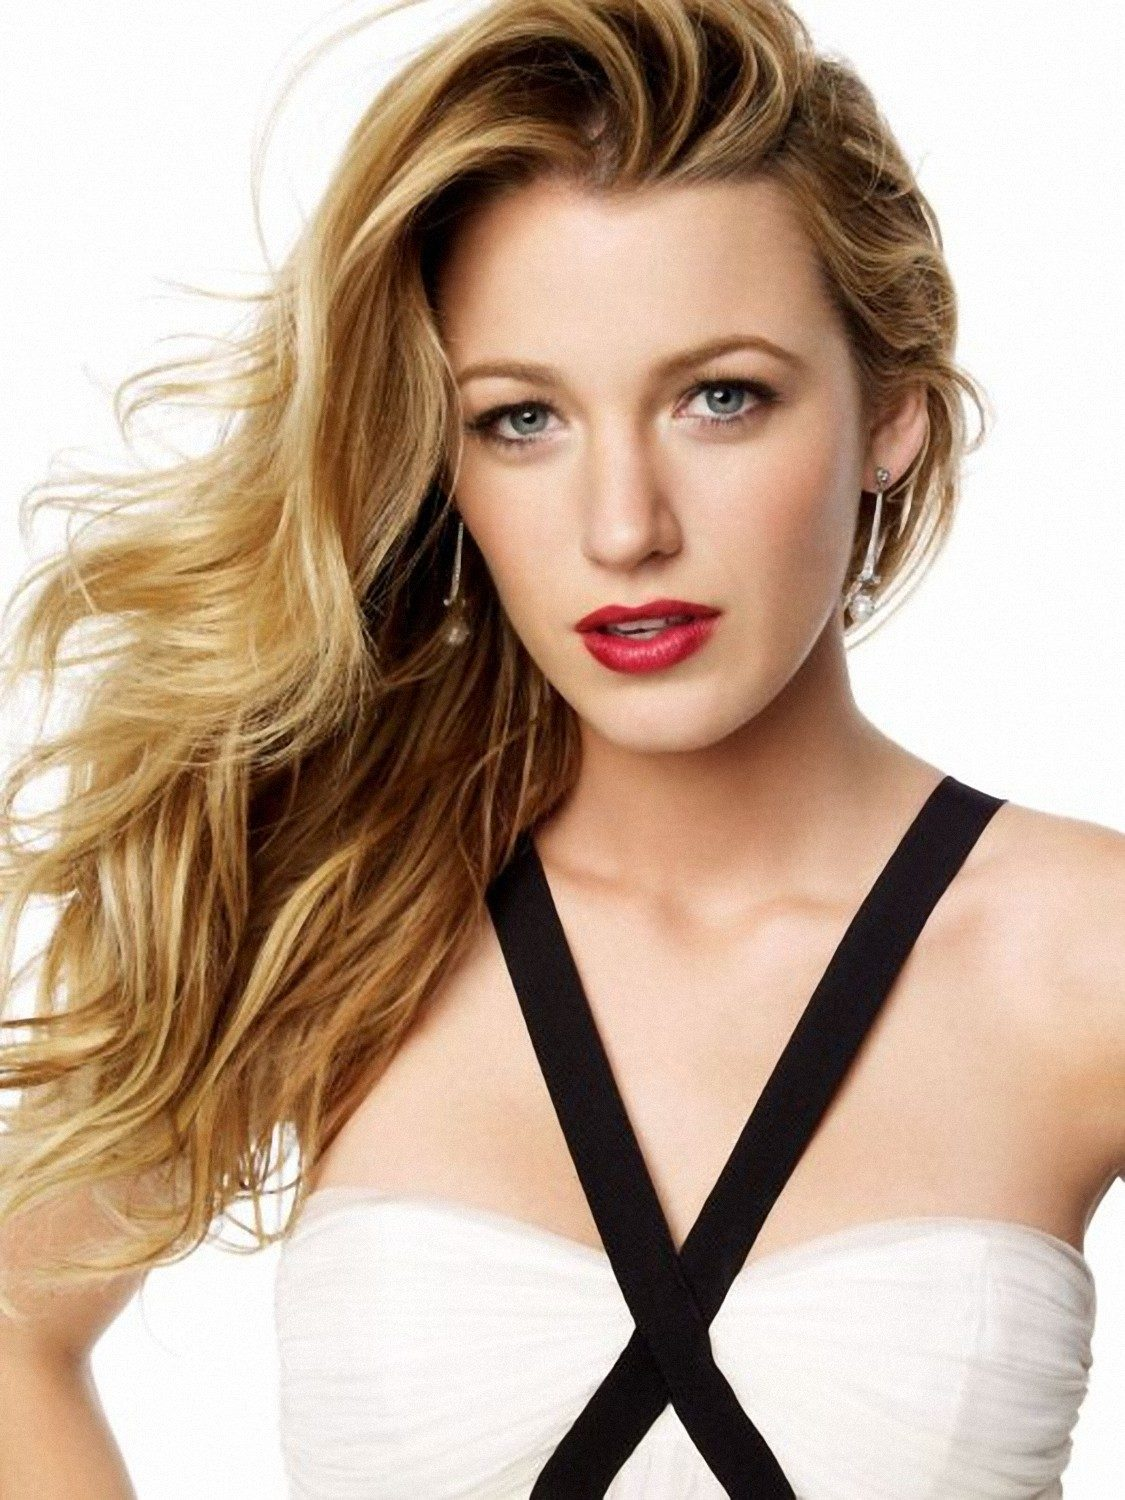 blake-lively-height-weight-age-bra-size-affairs-body-stats-bollywoodfox-2